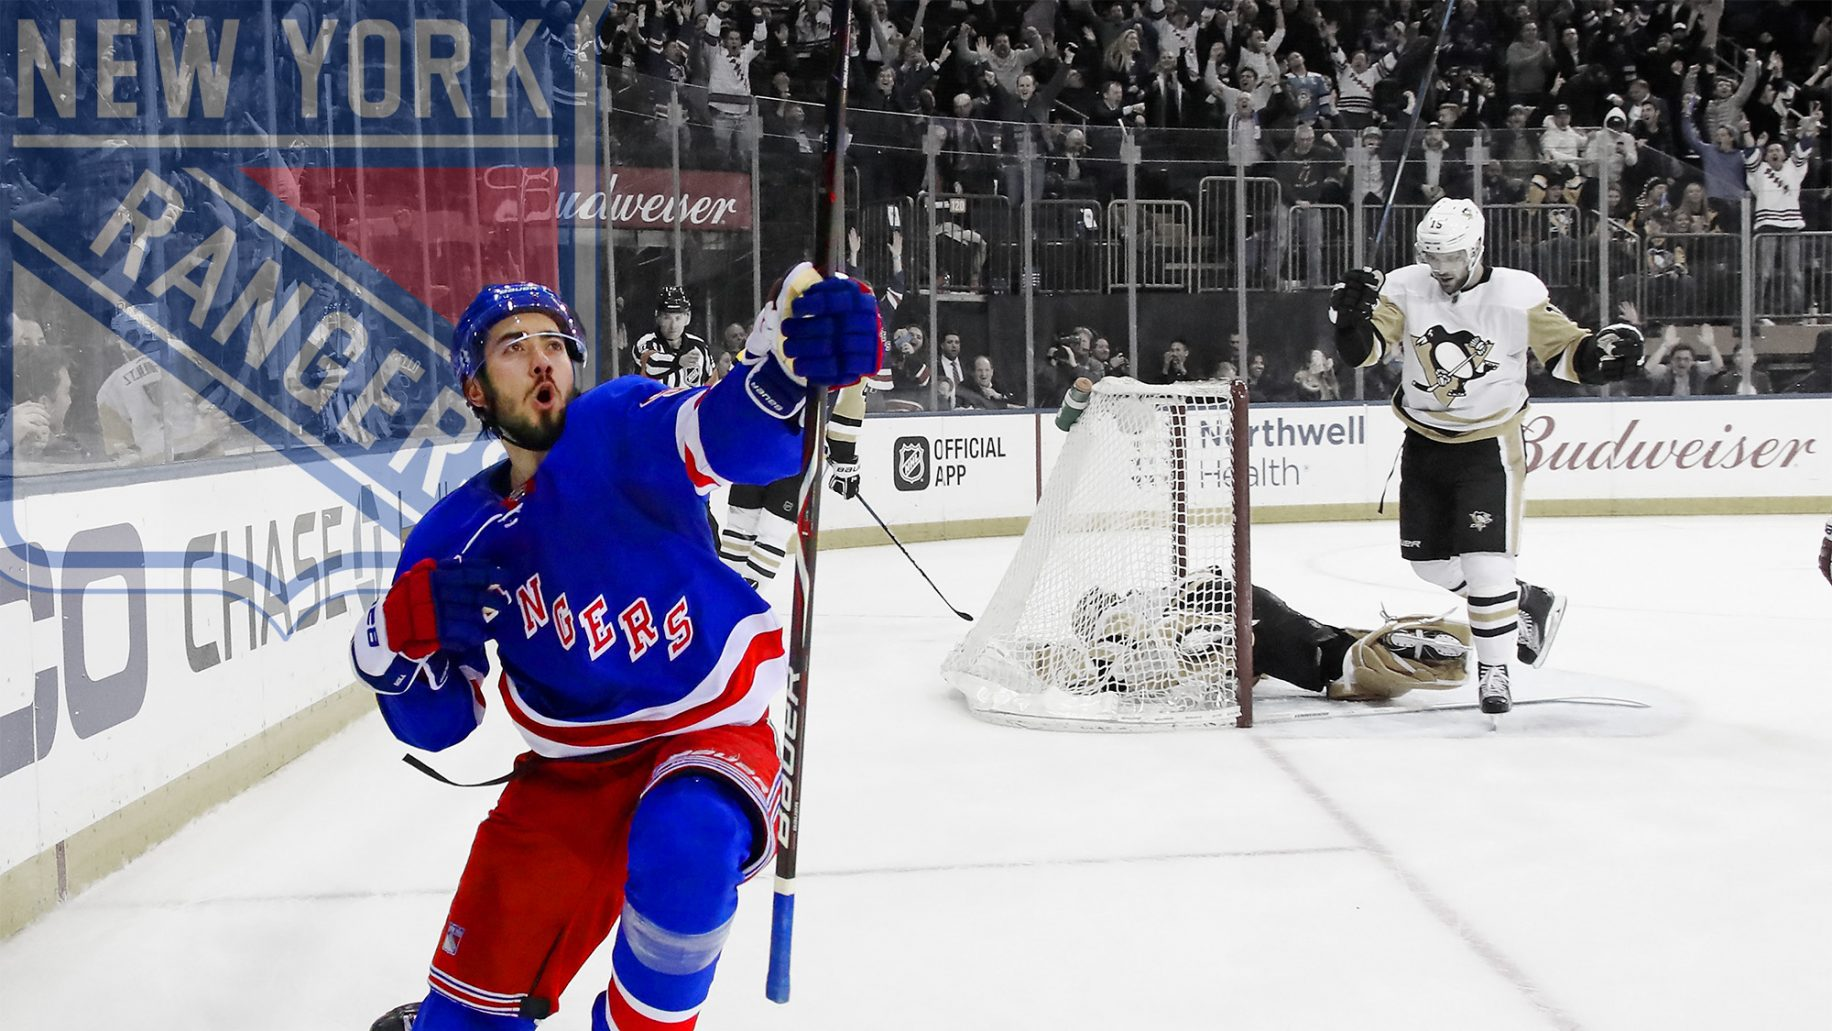 Pittsburgh-penguins-v-new-york-rangers-1